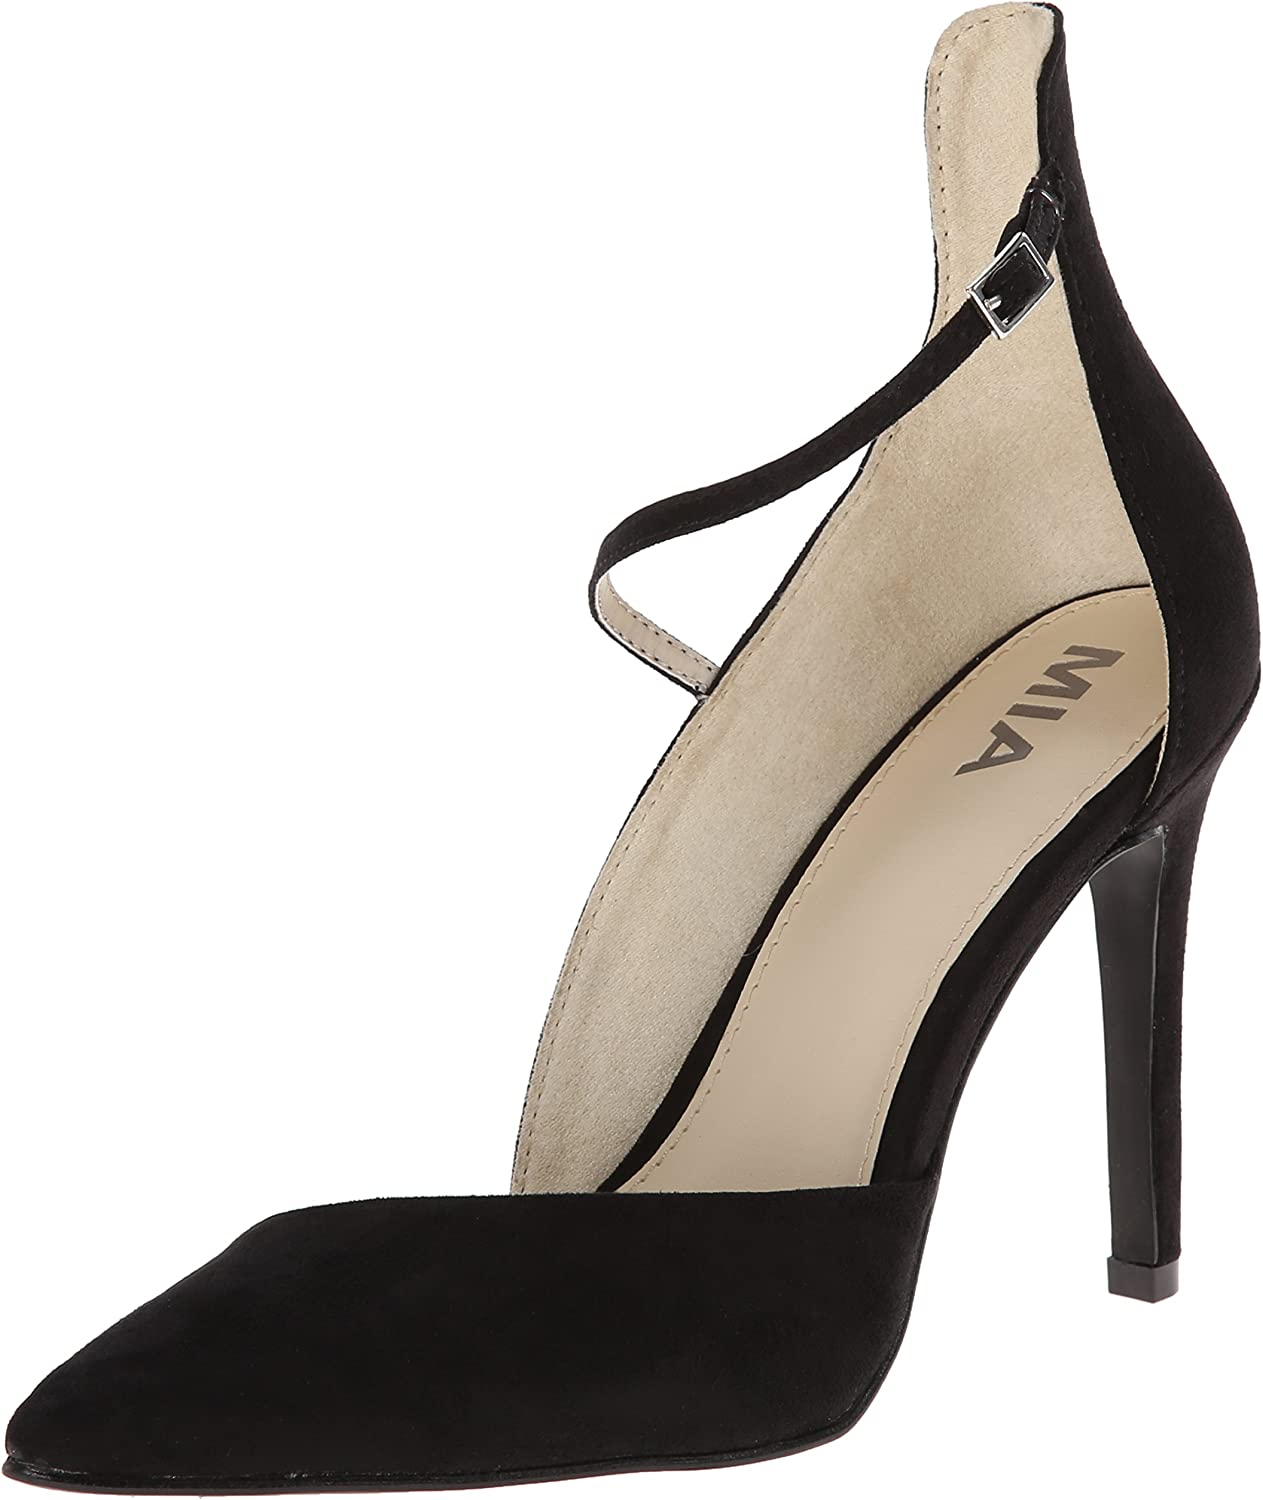 MIA shoes Womens Mona Heel Black 7.5